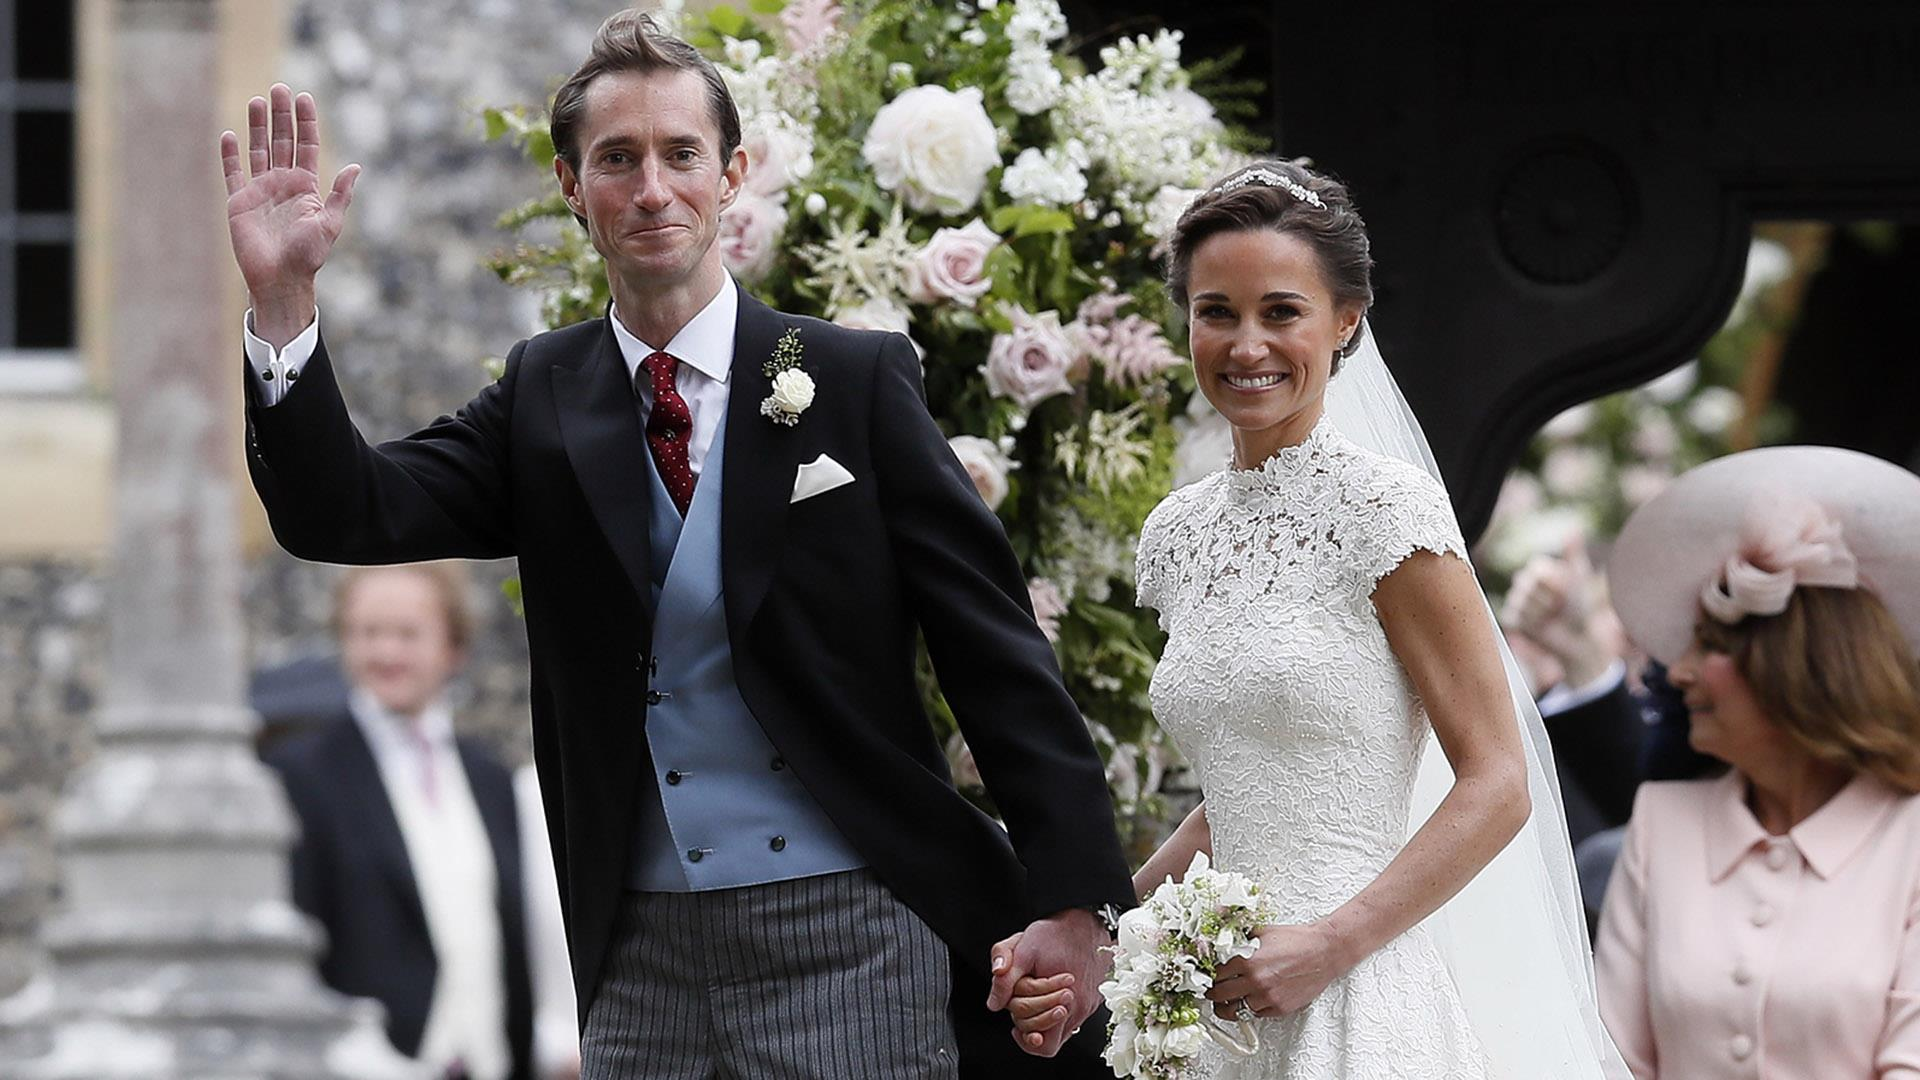 Pippa middleton gets married in fairy tale wedding today junglespirit Gallery